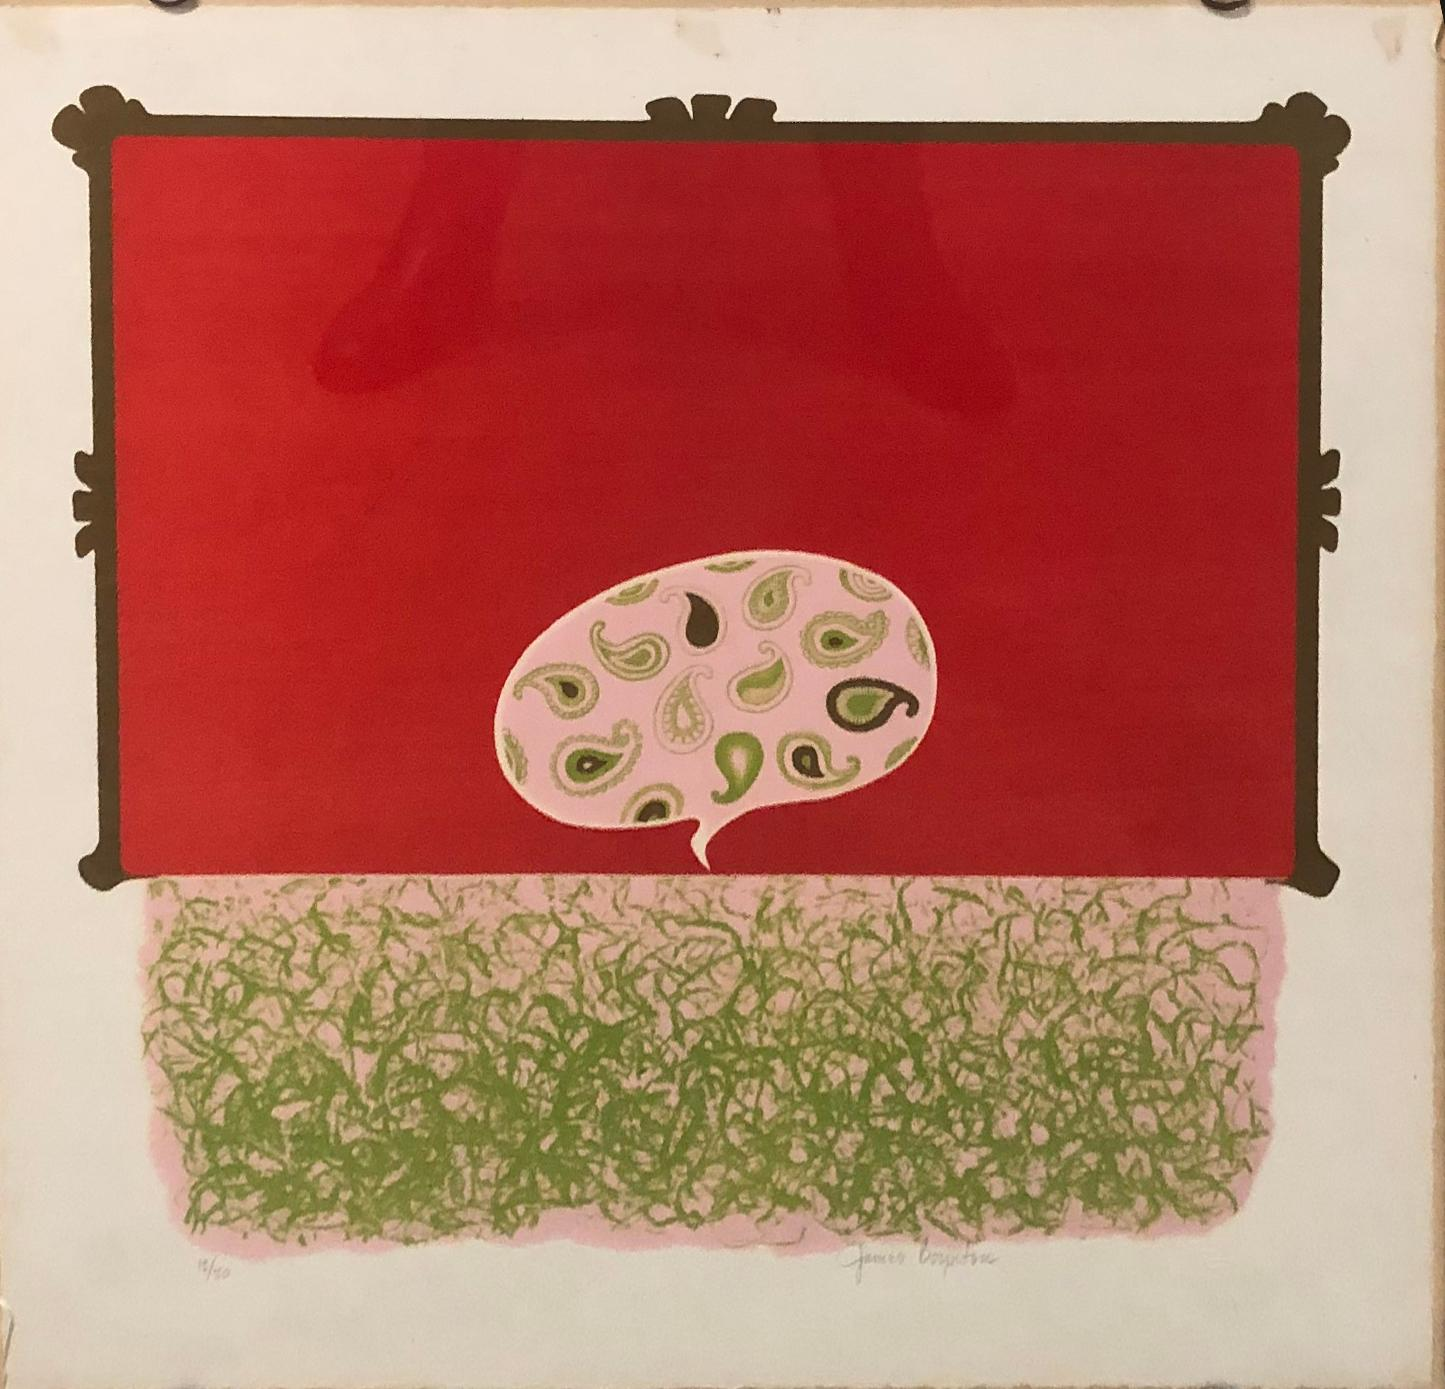 Untitled Red and Green Abstract Serigraph Silkscreen Print #12/20